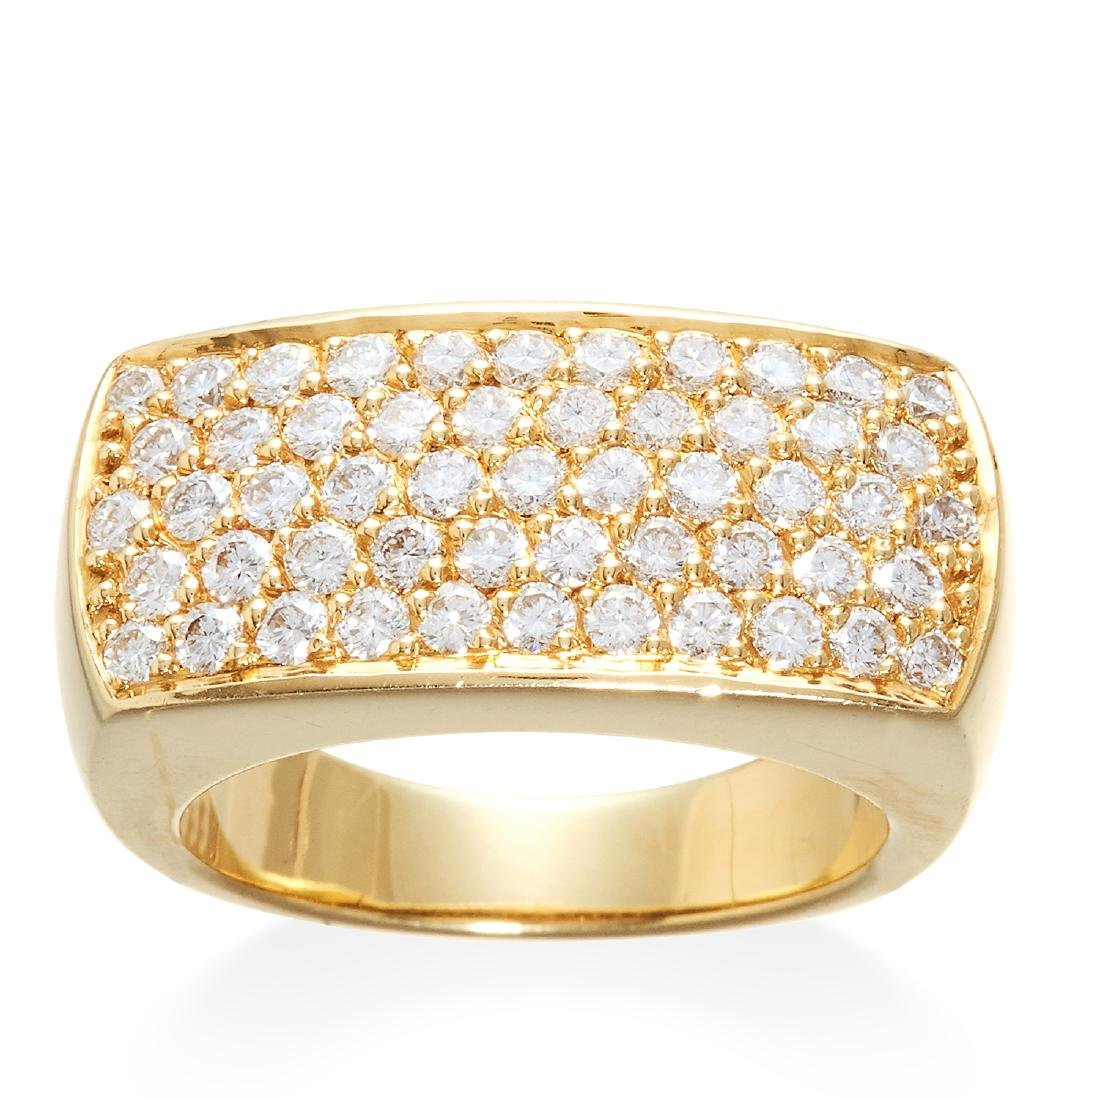 A DIAMOND DRESS RING in 18ct yellow gold, comprising of